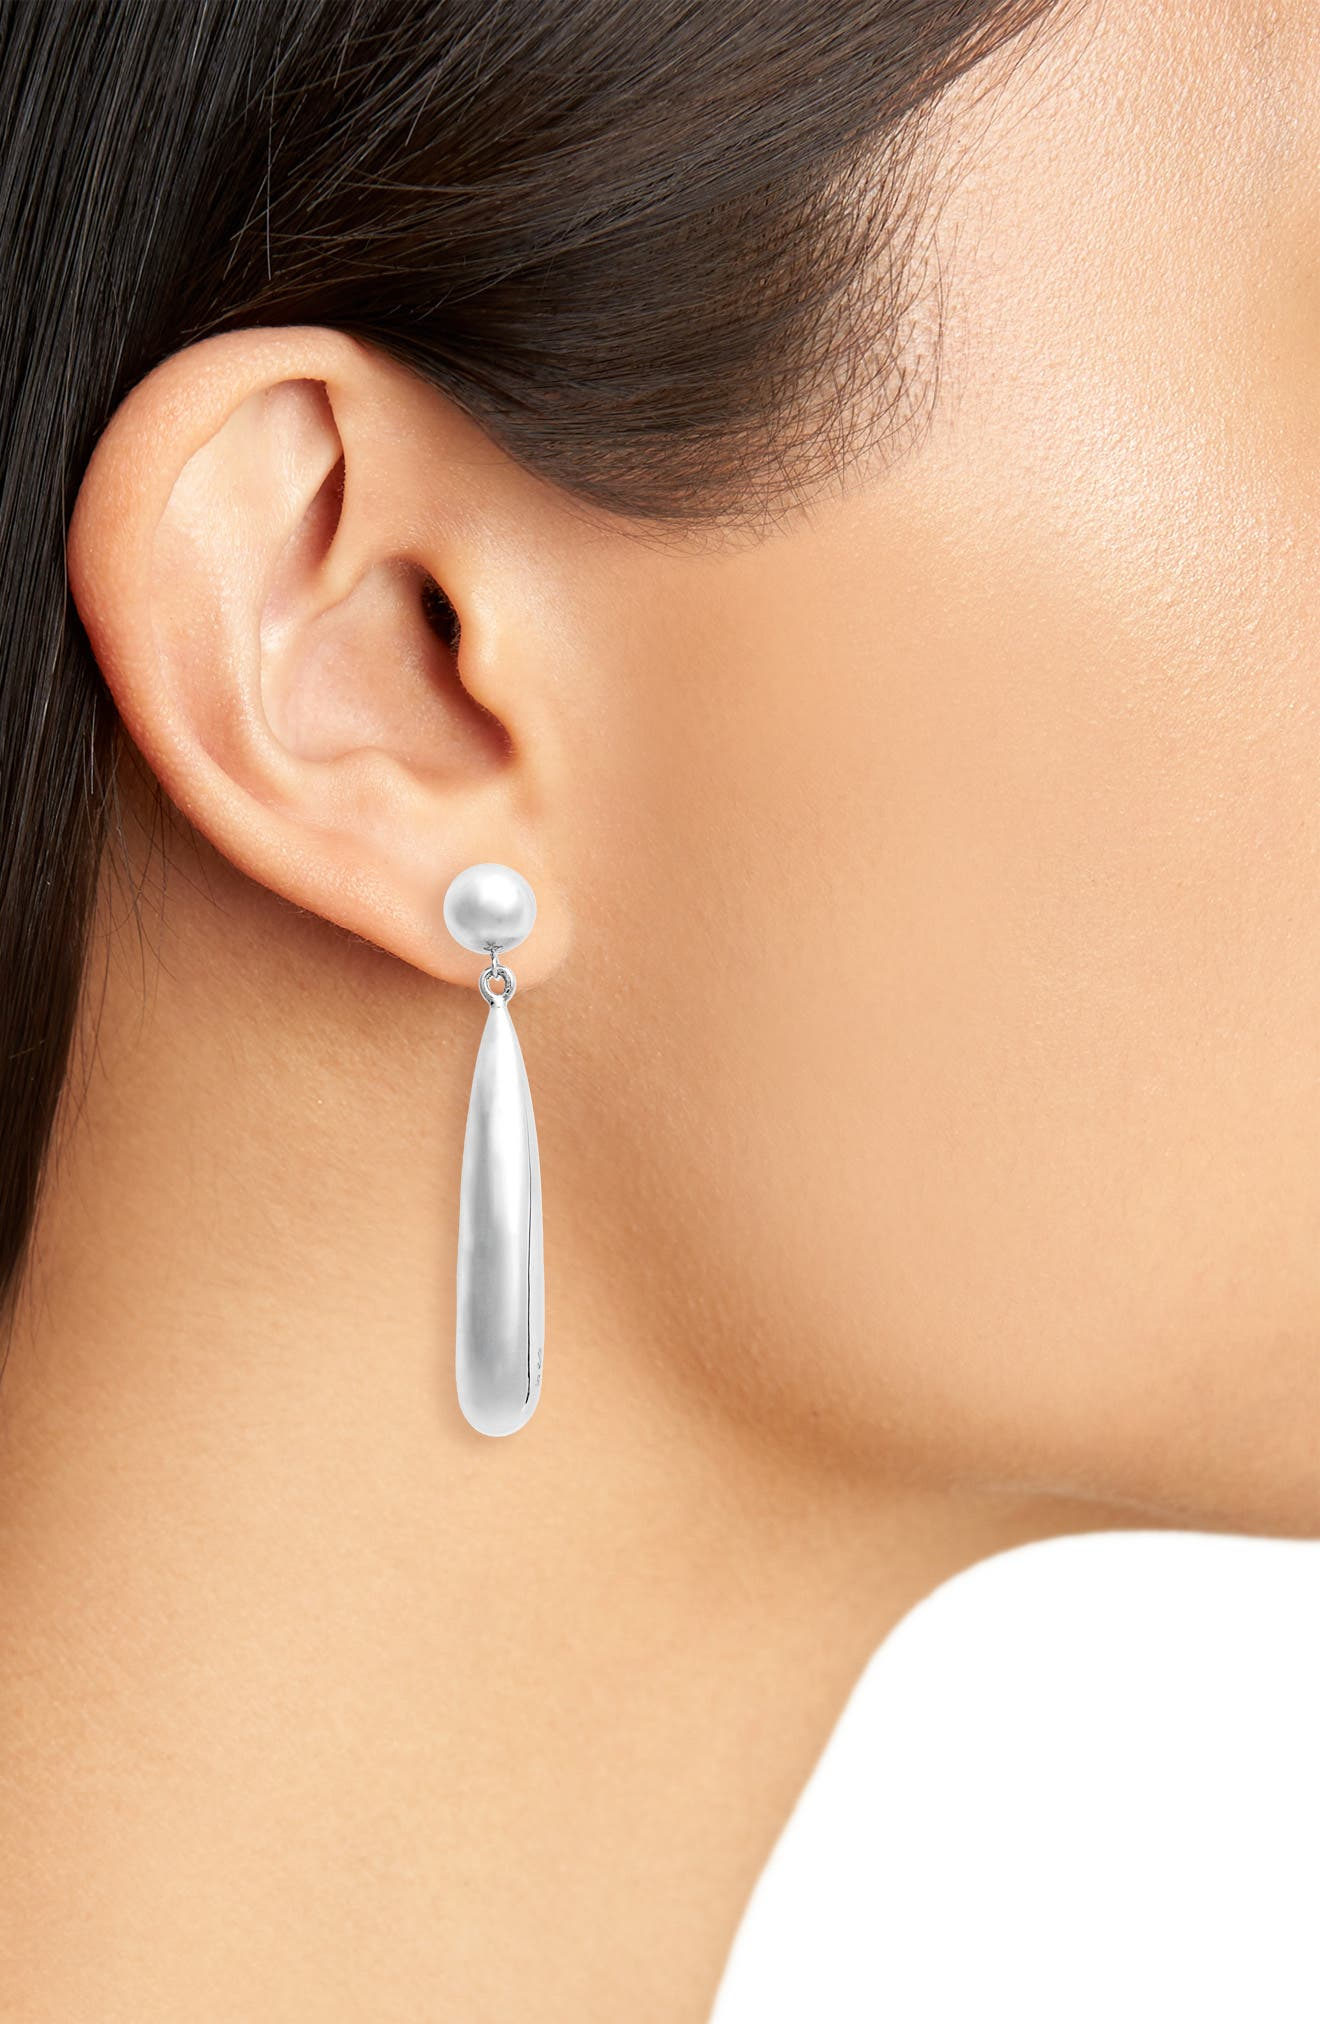 Large Teardrop Earrings,                             Alternate thumbnail 2, color,                             STERLING SILVER